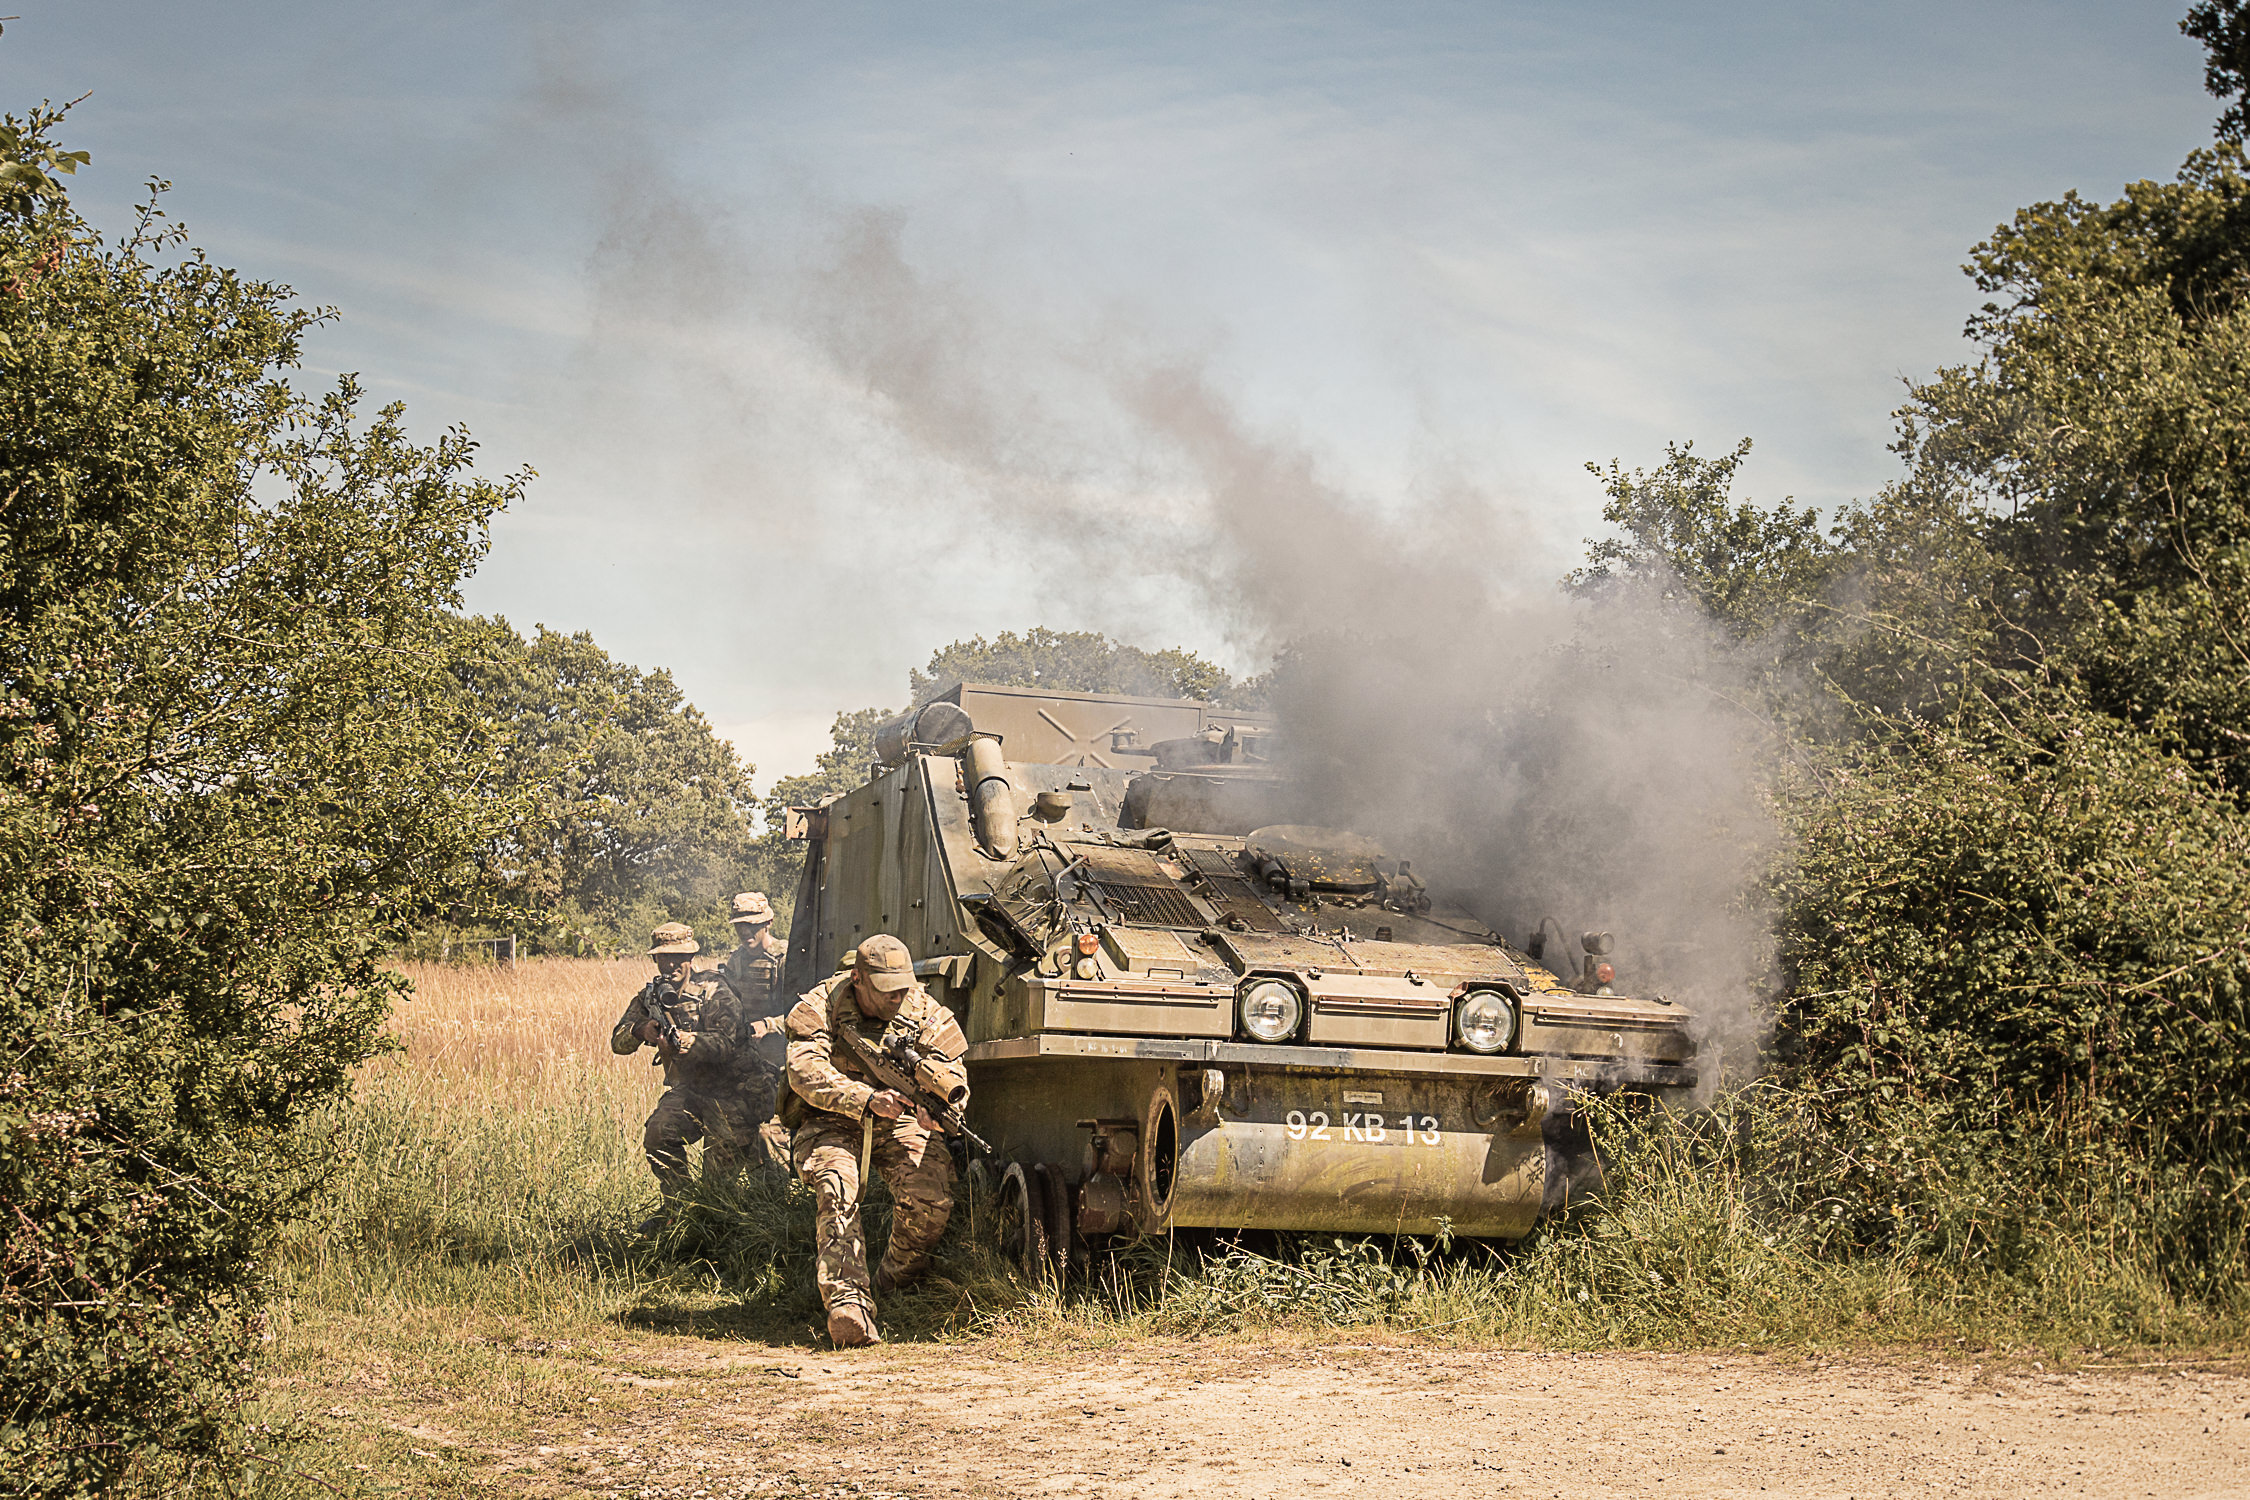 Uk Army soldiers criuched near a smoking military vehicle